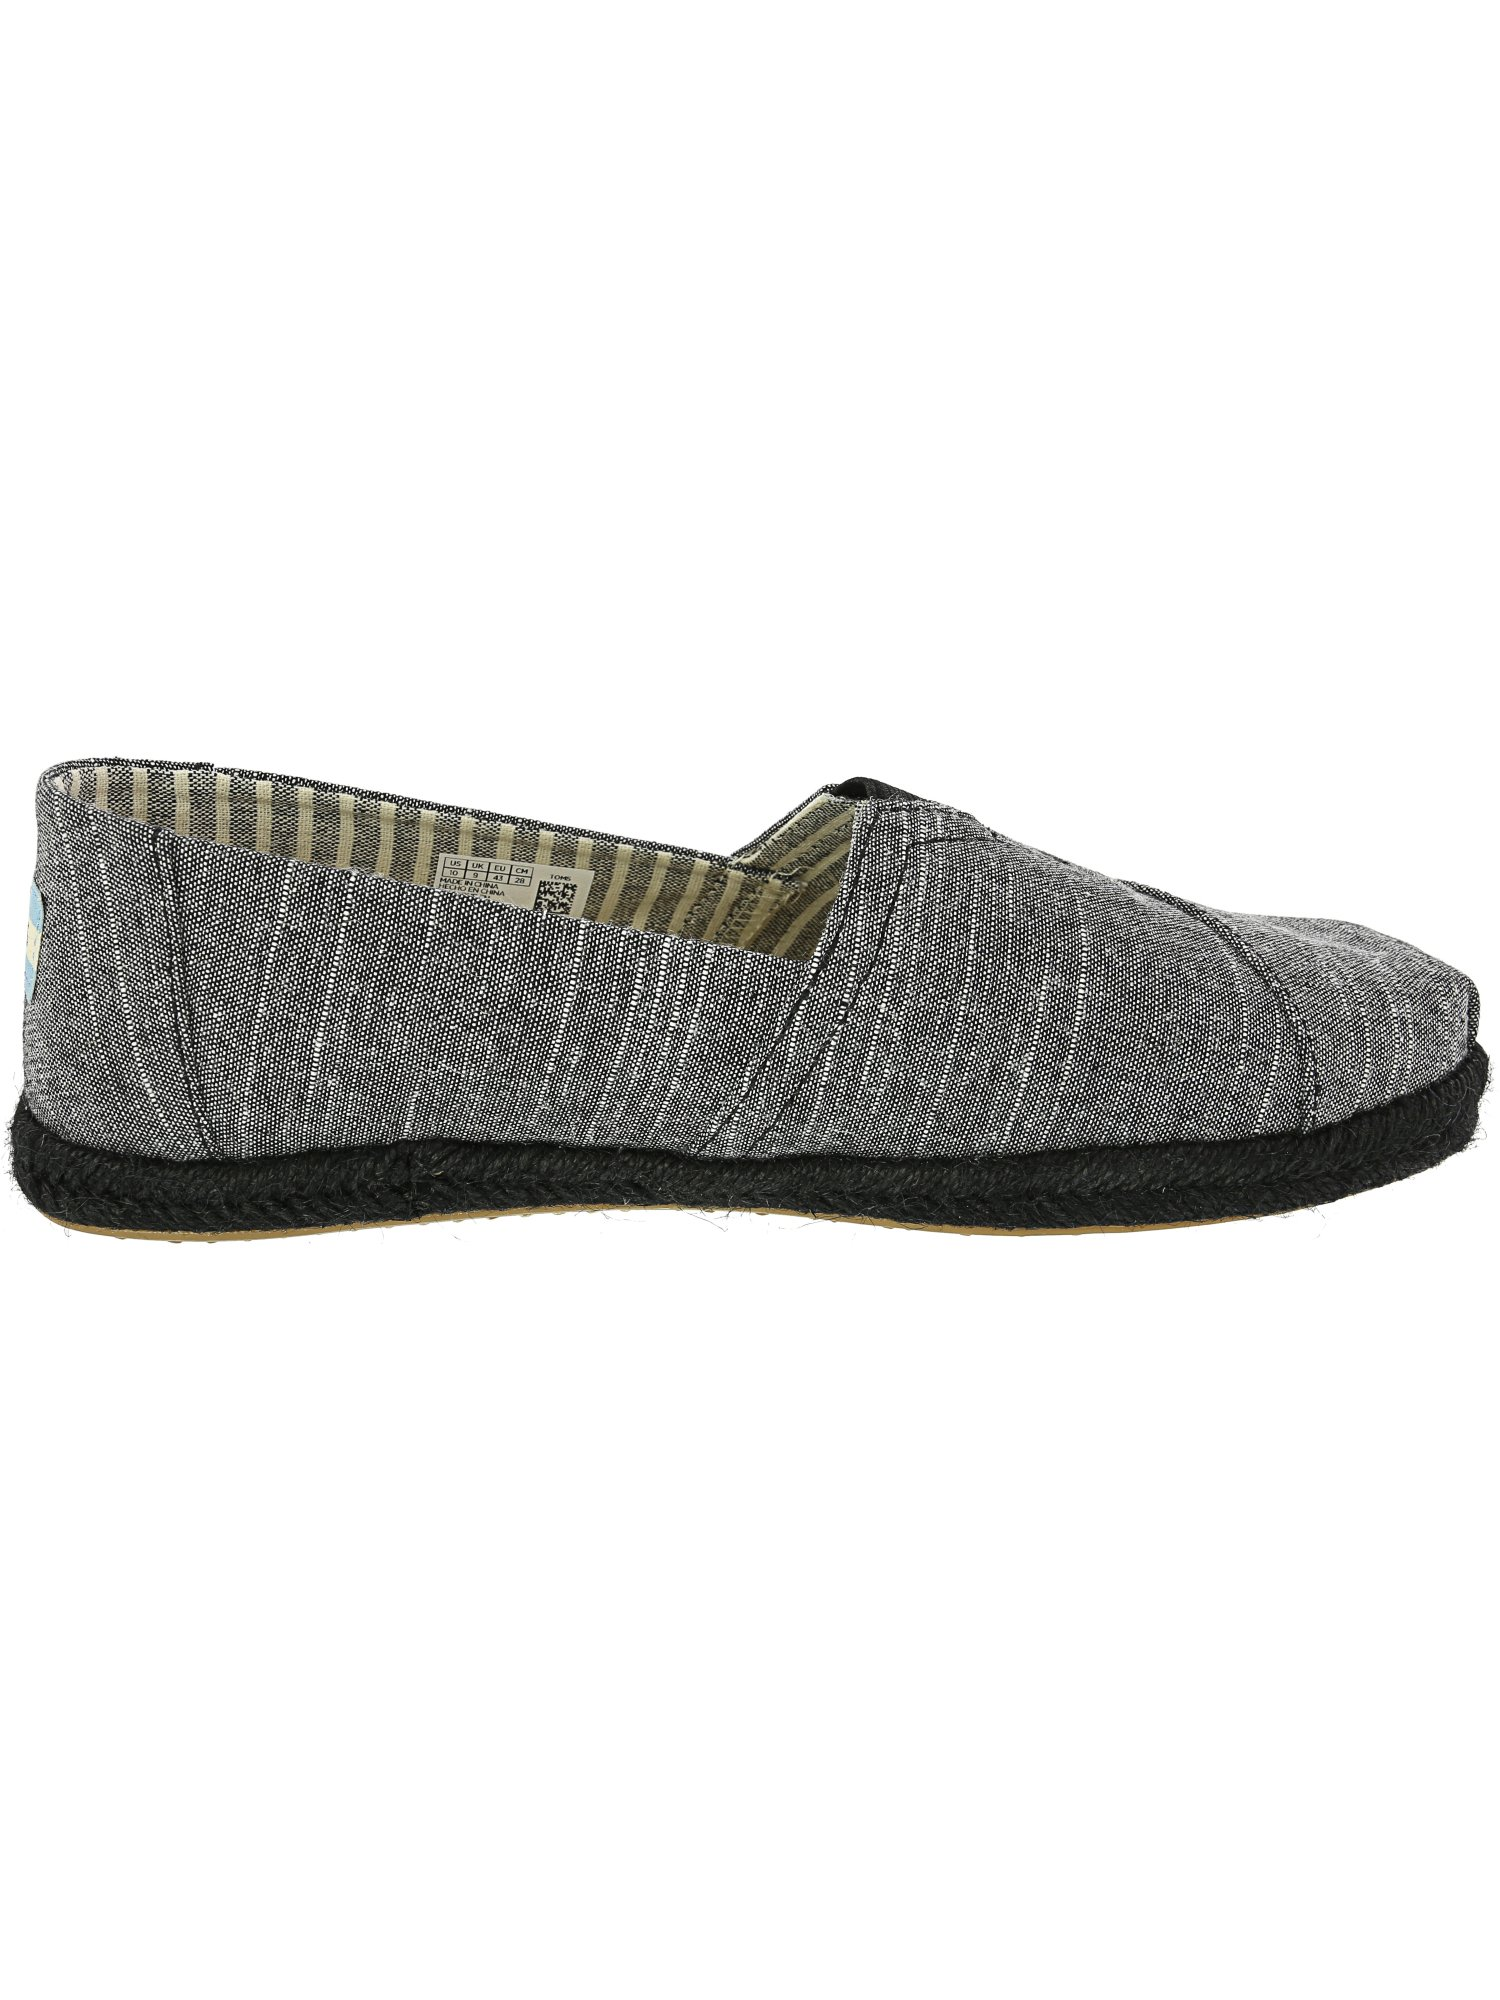 Toms-Men-039-s-Classic-Rugged-Chambray-Fabric-Slip-On-Shoes thumbnail 8